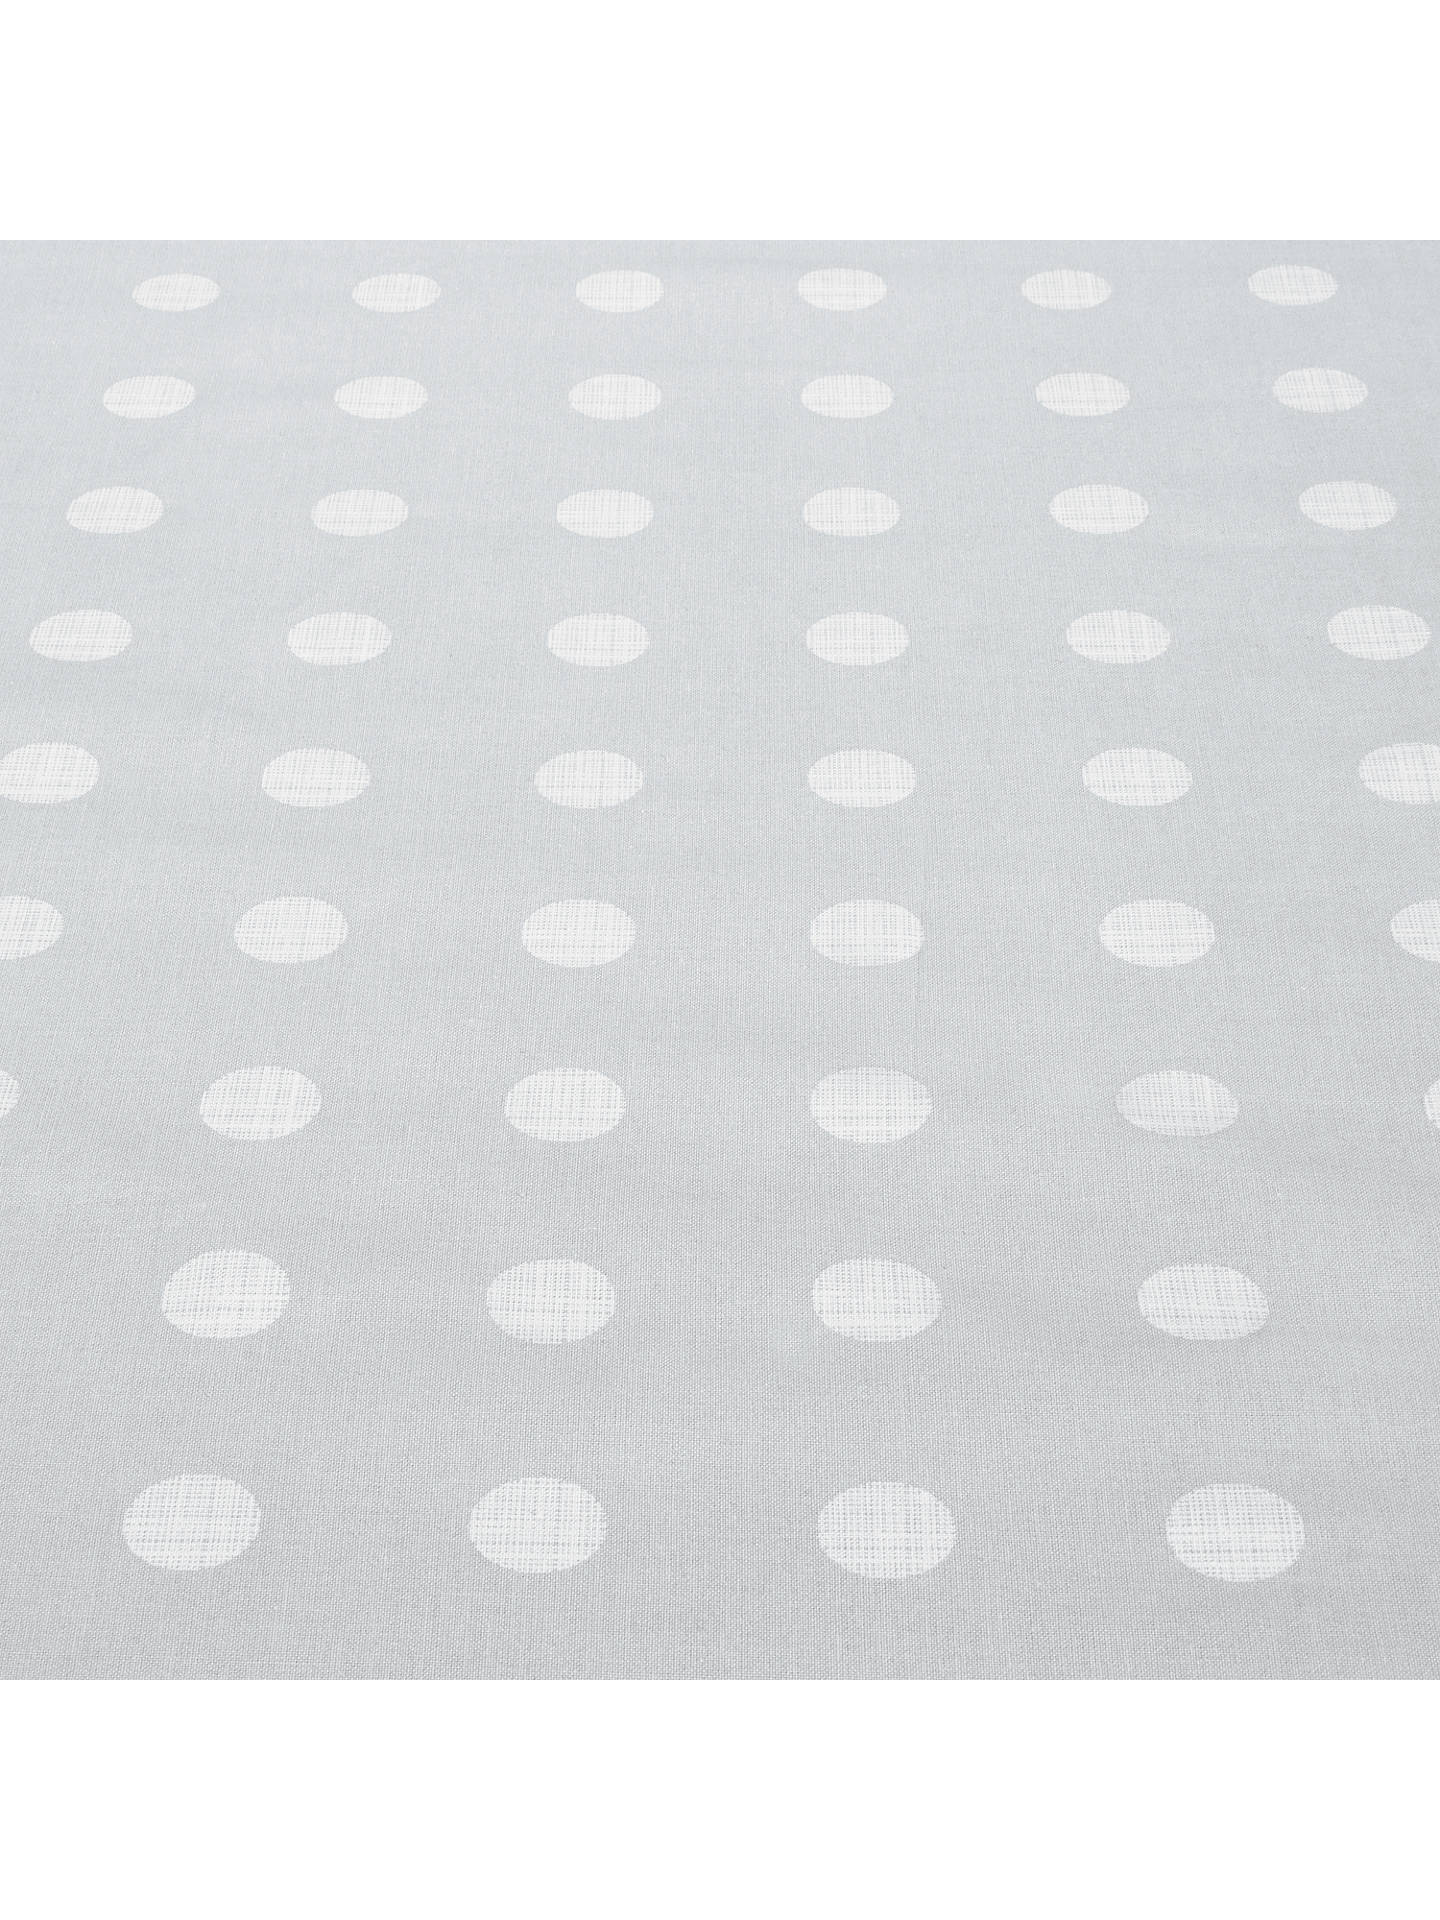 BuyHouse by John Lewis Dots PVC Tablecloth Fabric, Blue Grey Online at johnlewis.com